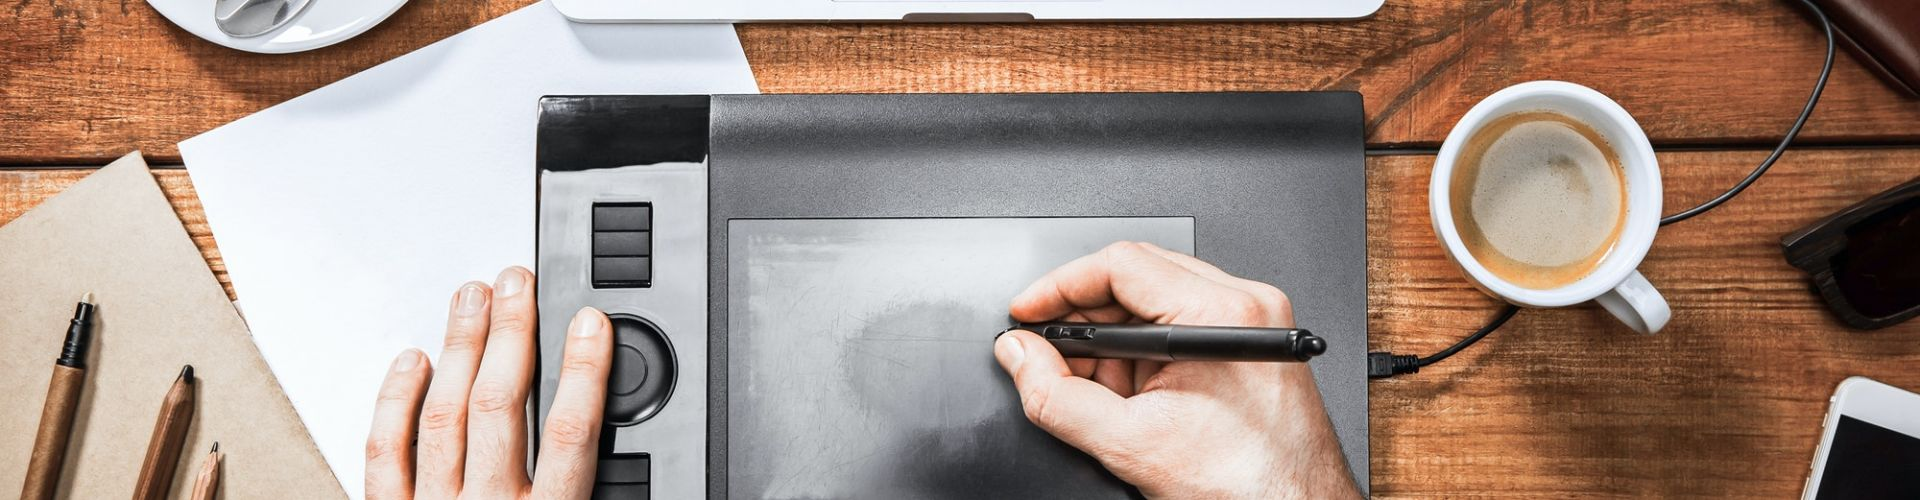 Graphic Designer working with interactive pen display, digital Drawing tablet and computer